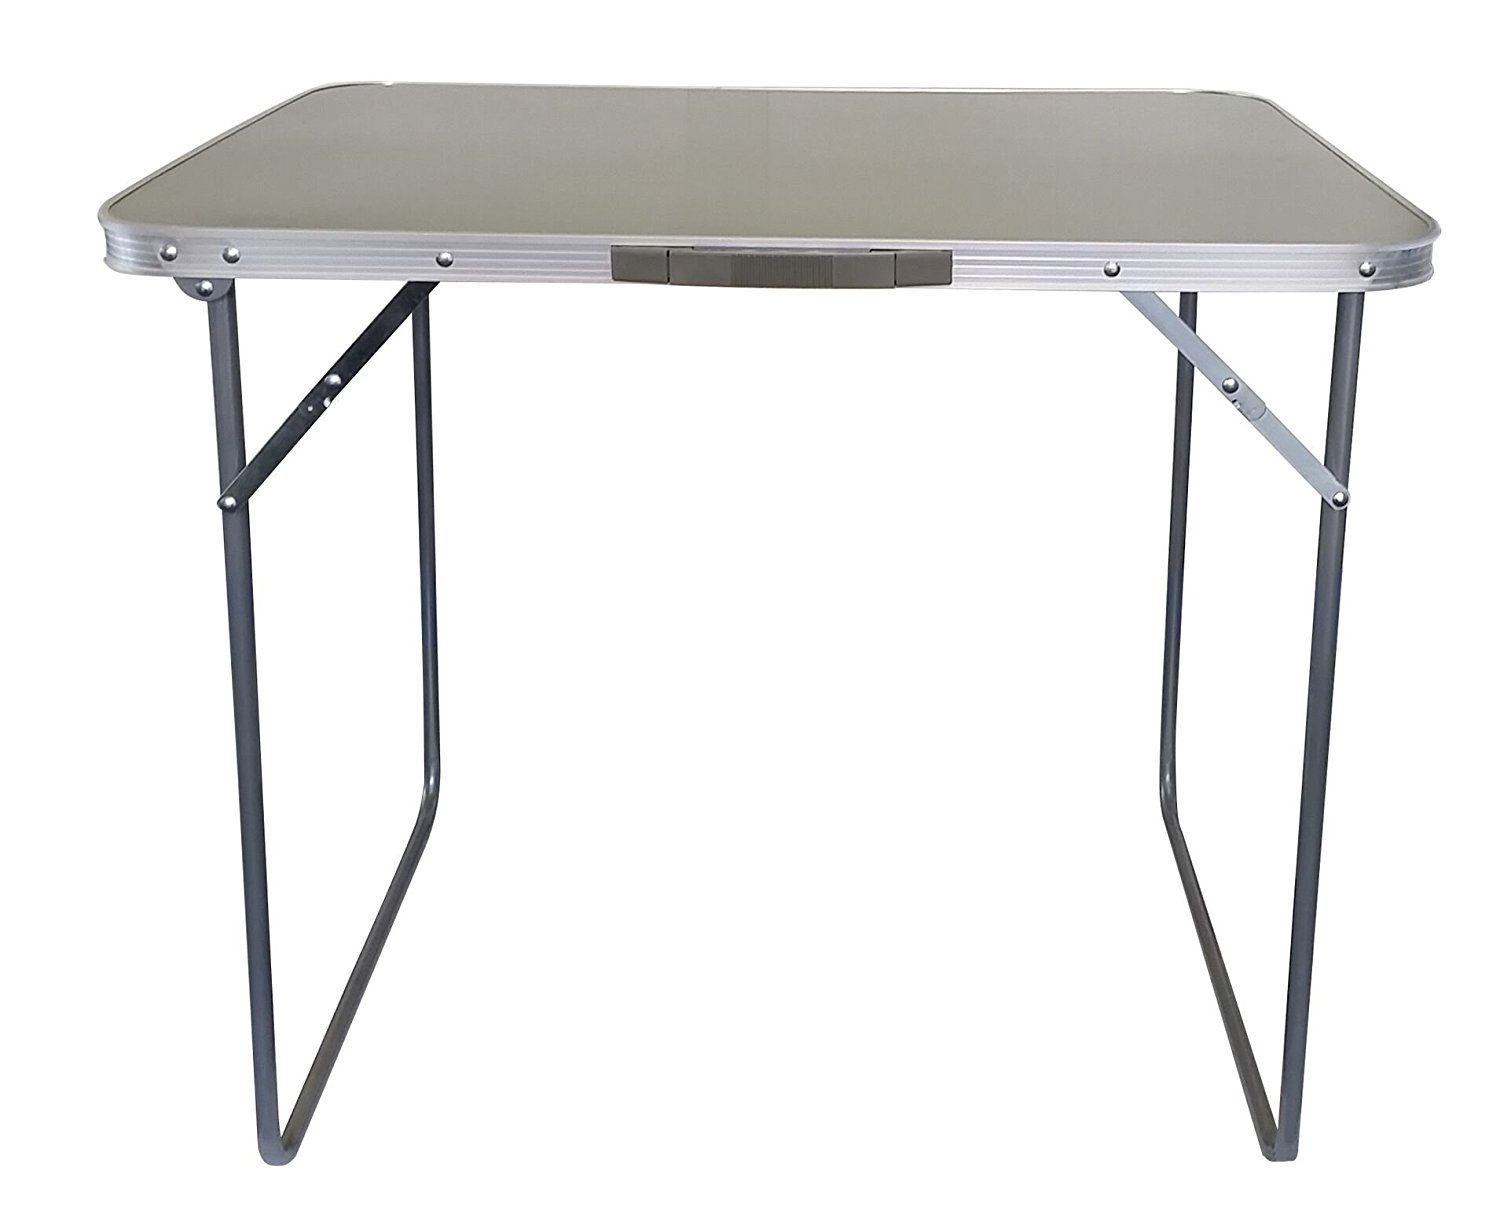 Strider Single Camping High Table